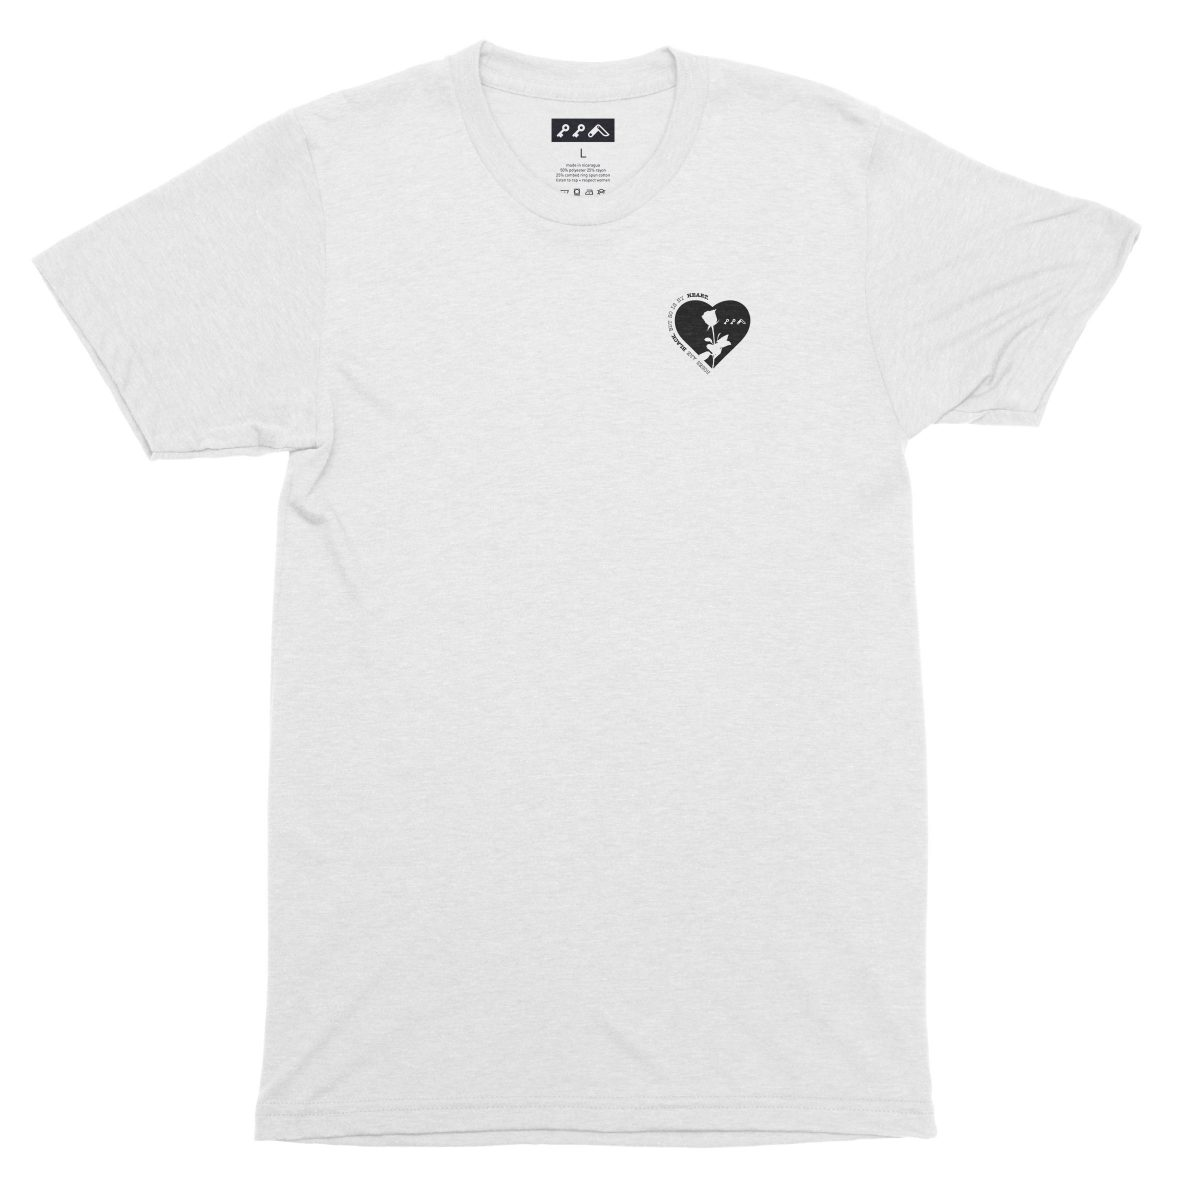 ROSES ARE BLACK BUT SO IS MY HEART shirt in white by kikicutt